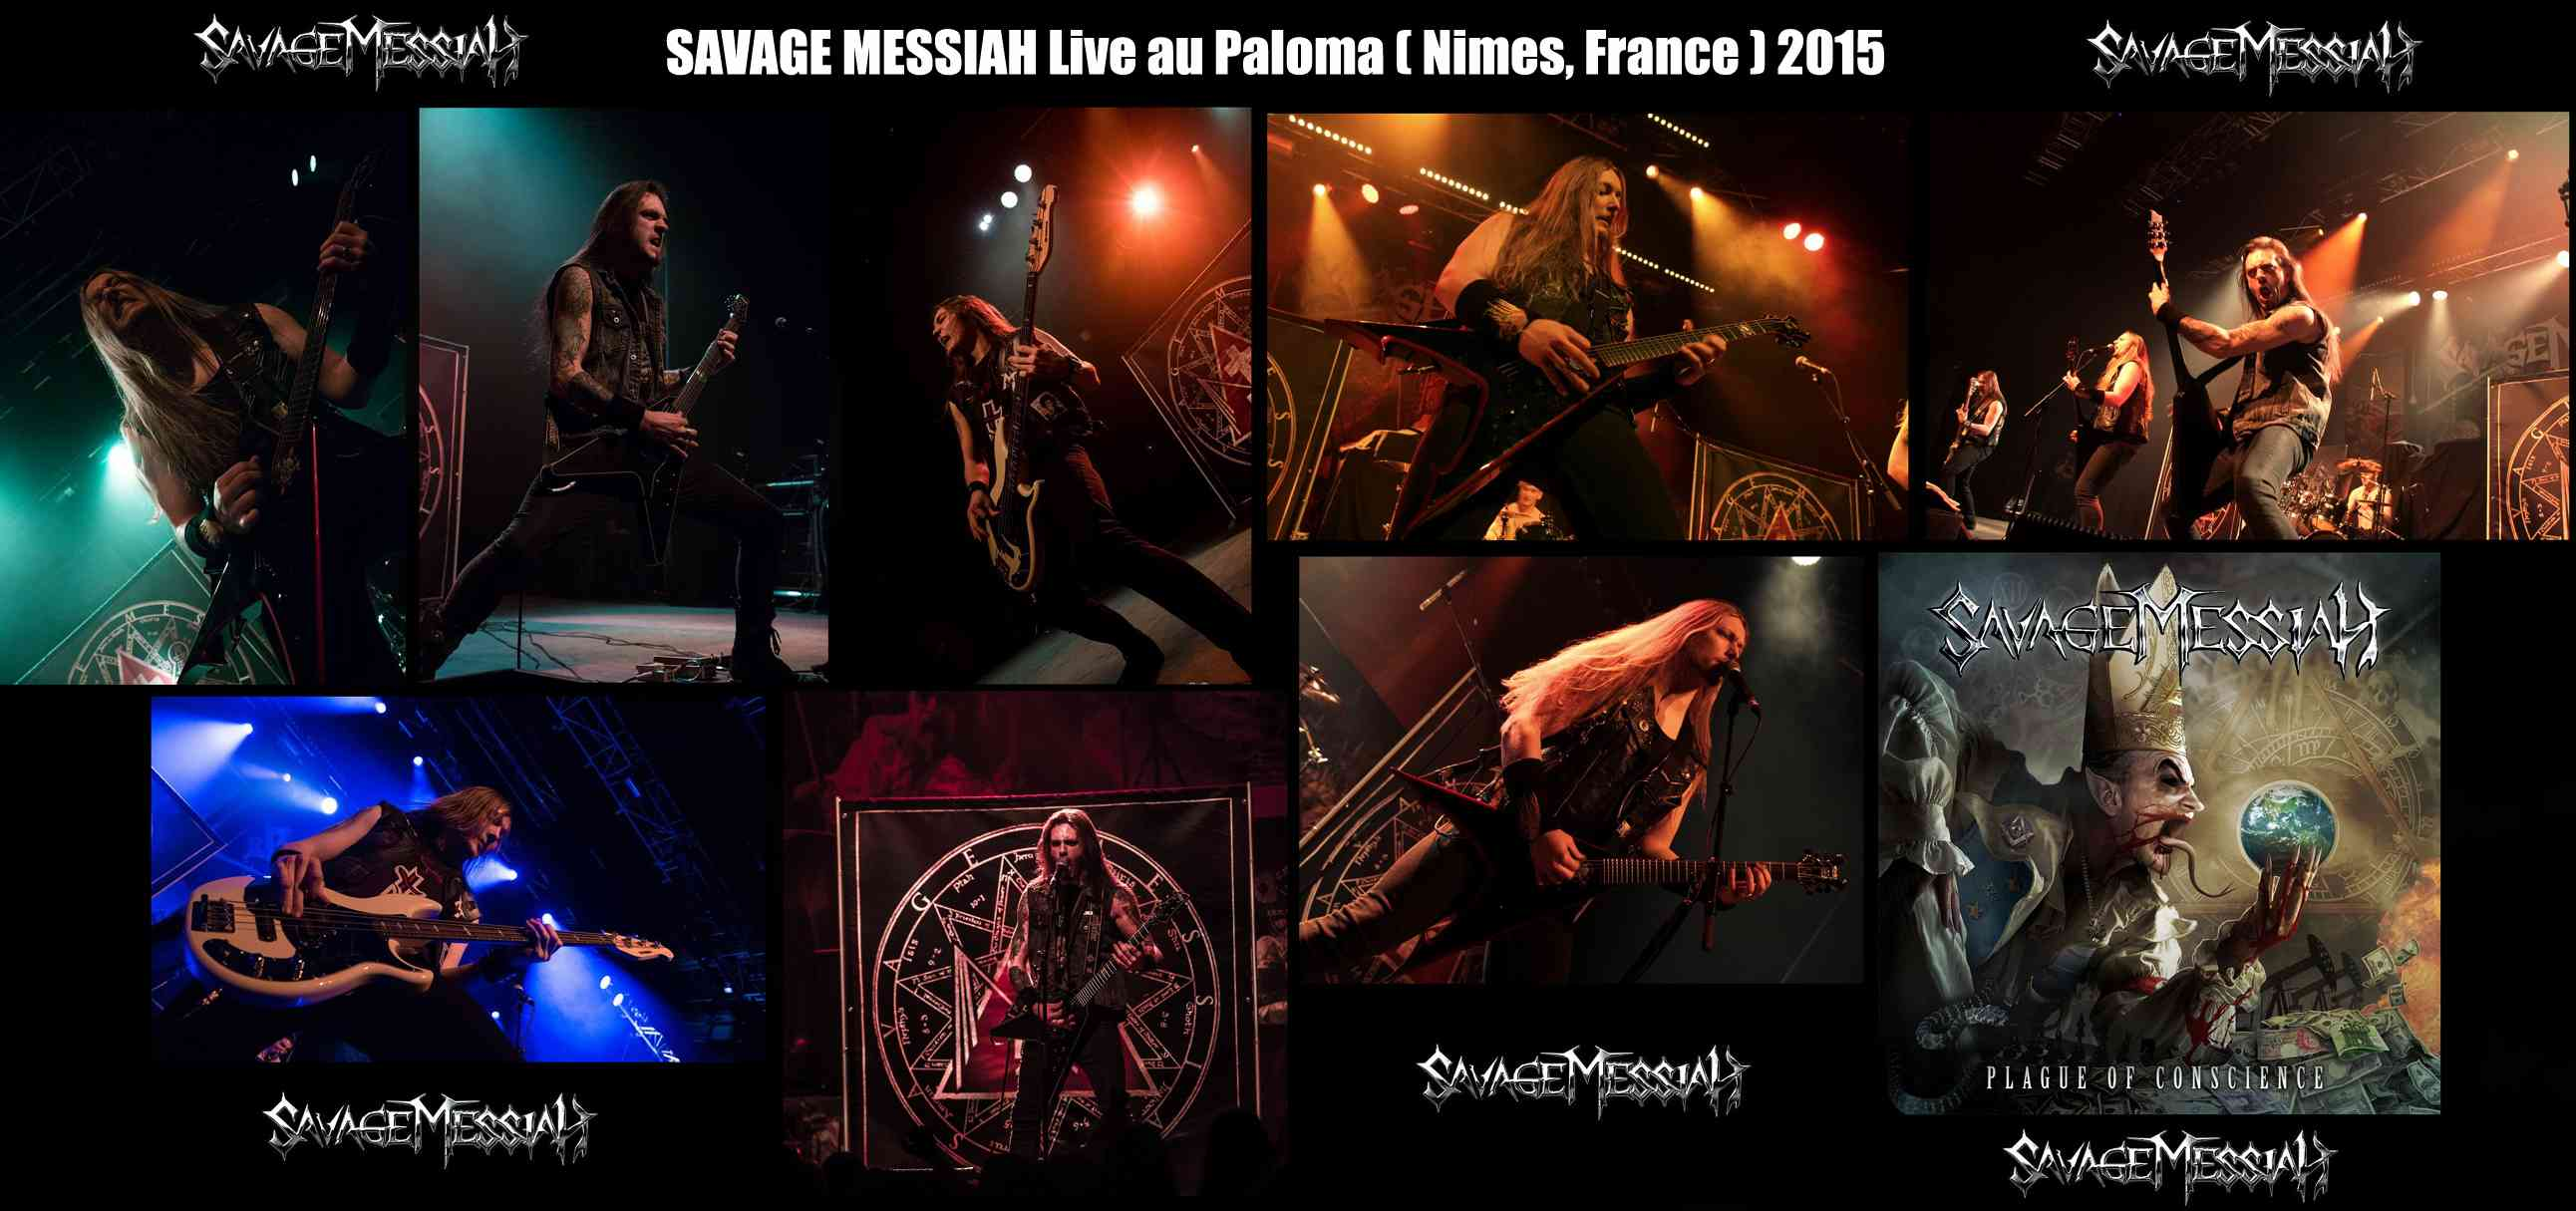 Mes petits montages photos ... - Page 6 Savage10